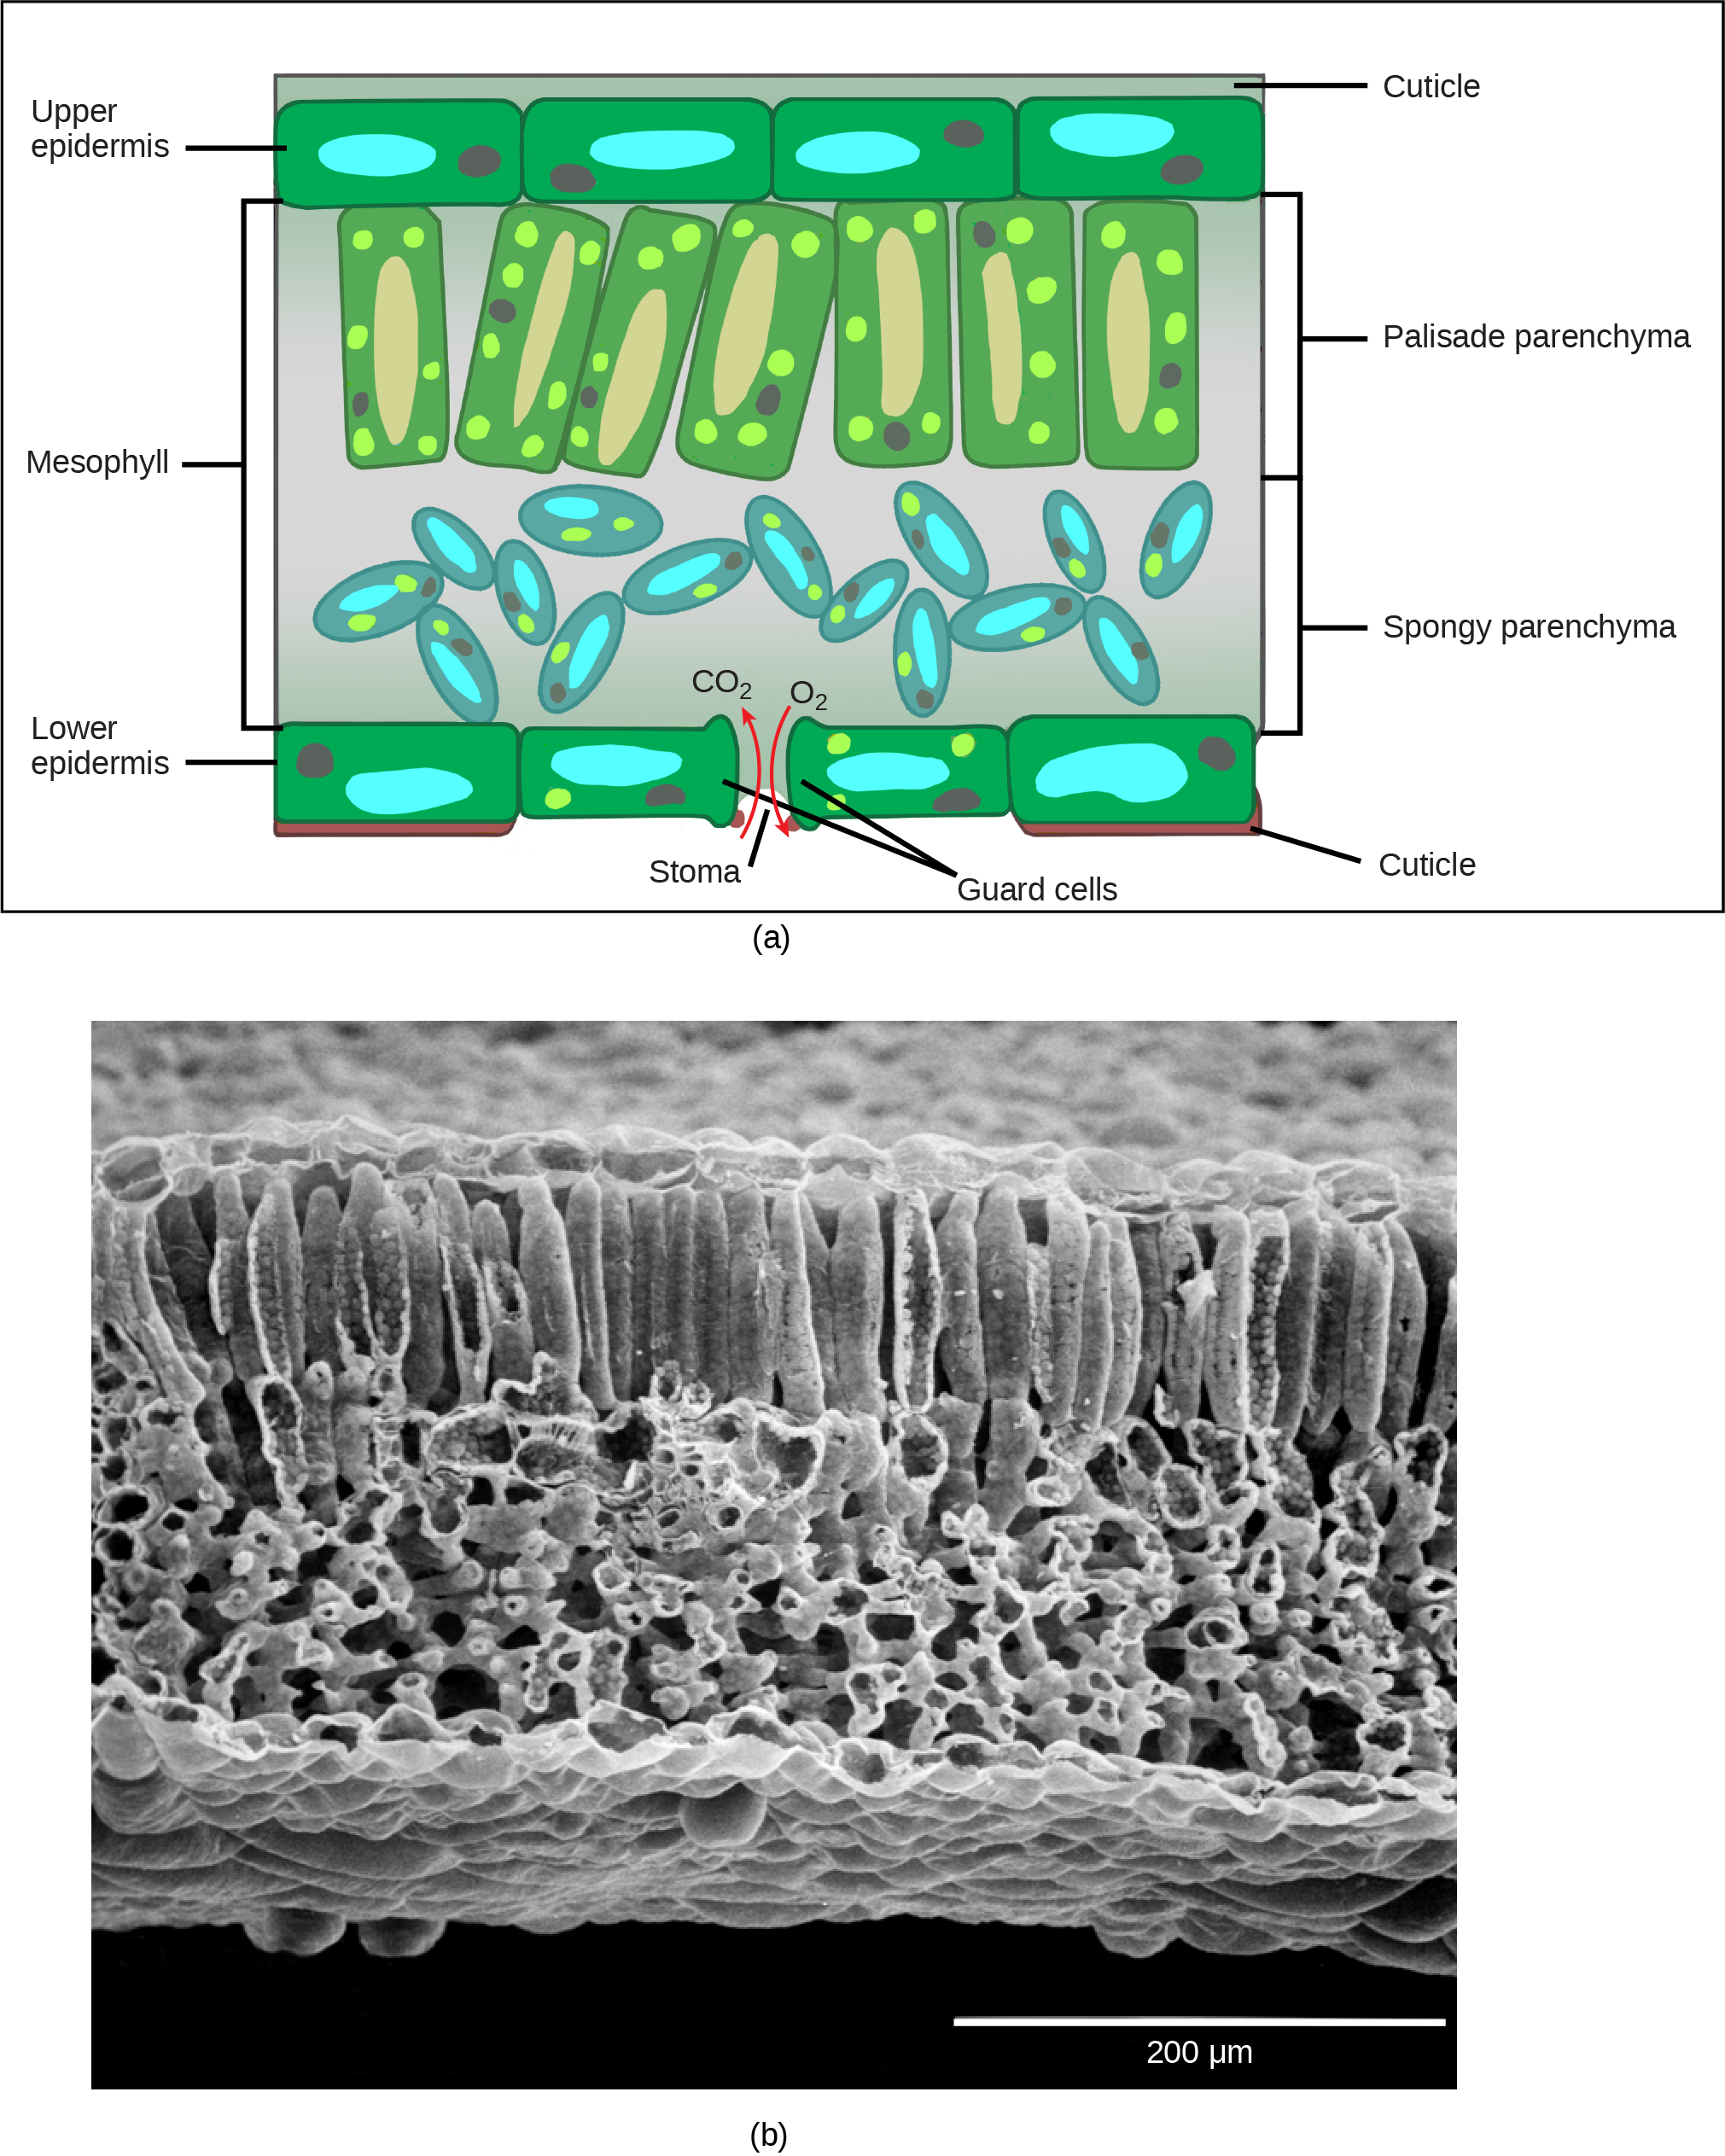 Part A is a leaf cross section illustration. A flat layer of rectangular cells make up the upper and lower epidermis. A cuticle layer protects the outside of both epidermal layers. A stomatal pore in the lower epidermis allows carbon dioxide to enter and oxygen to leave. Oval guard cells surround the pore. Sandwiched between the upper and lower epidermis is the mesophyll. The upper part of the mesophyll is comprised of columnar cells called palisade parenchyma. The lower part of the mesophyll is made up of loosely packed spongy parenchyma. Part B is a scanning electron micrograph of a leaf in which all the layers described above are visible. Palisade cells are about 50 microns tall and 10 microns wide and are covered with tiny bumps, which are the chloroplasts. Spongy cells smaller and irregularly shaped. Several large bumps about 20 microns across project from the lower surface of the leaf.